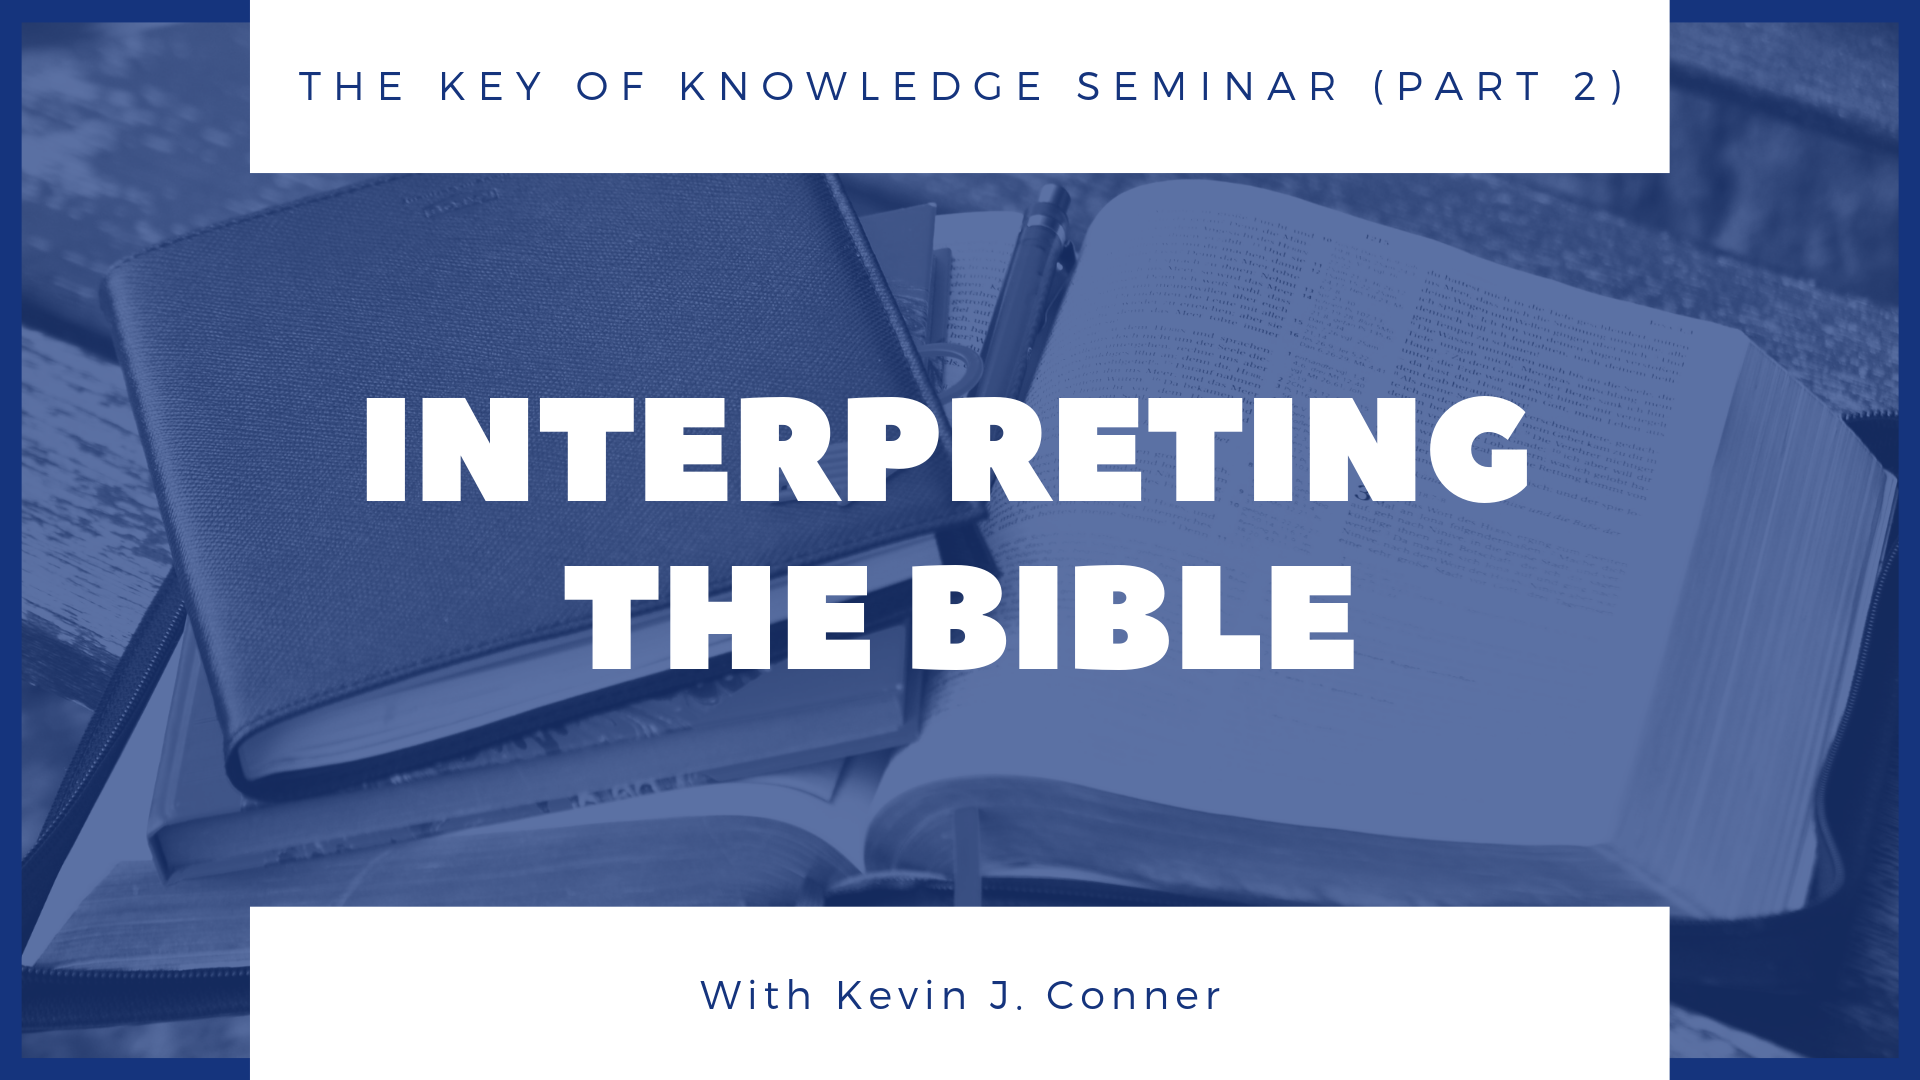 Interpreting the Bible (Key of Knowledge Seminar – Part 2)